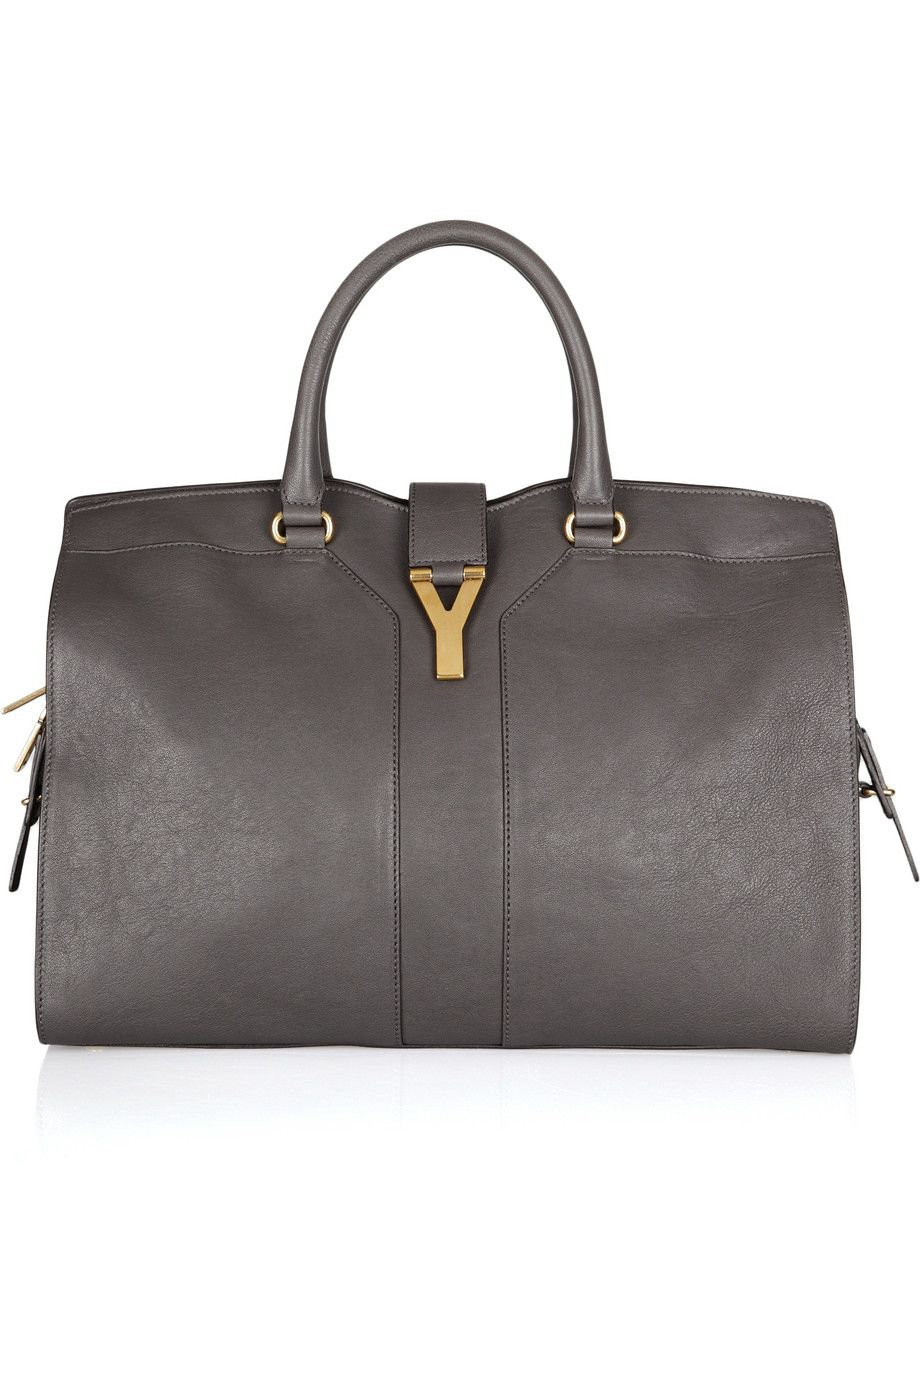 YSL Large Cabas Chyc leather tote via NET-A-PORTER  fashion  ysl  tote  bags   grey. Yves Saint Laurent ... c387b59ad0